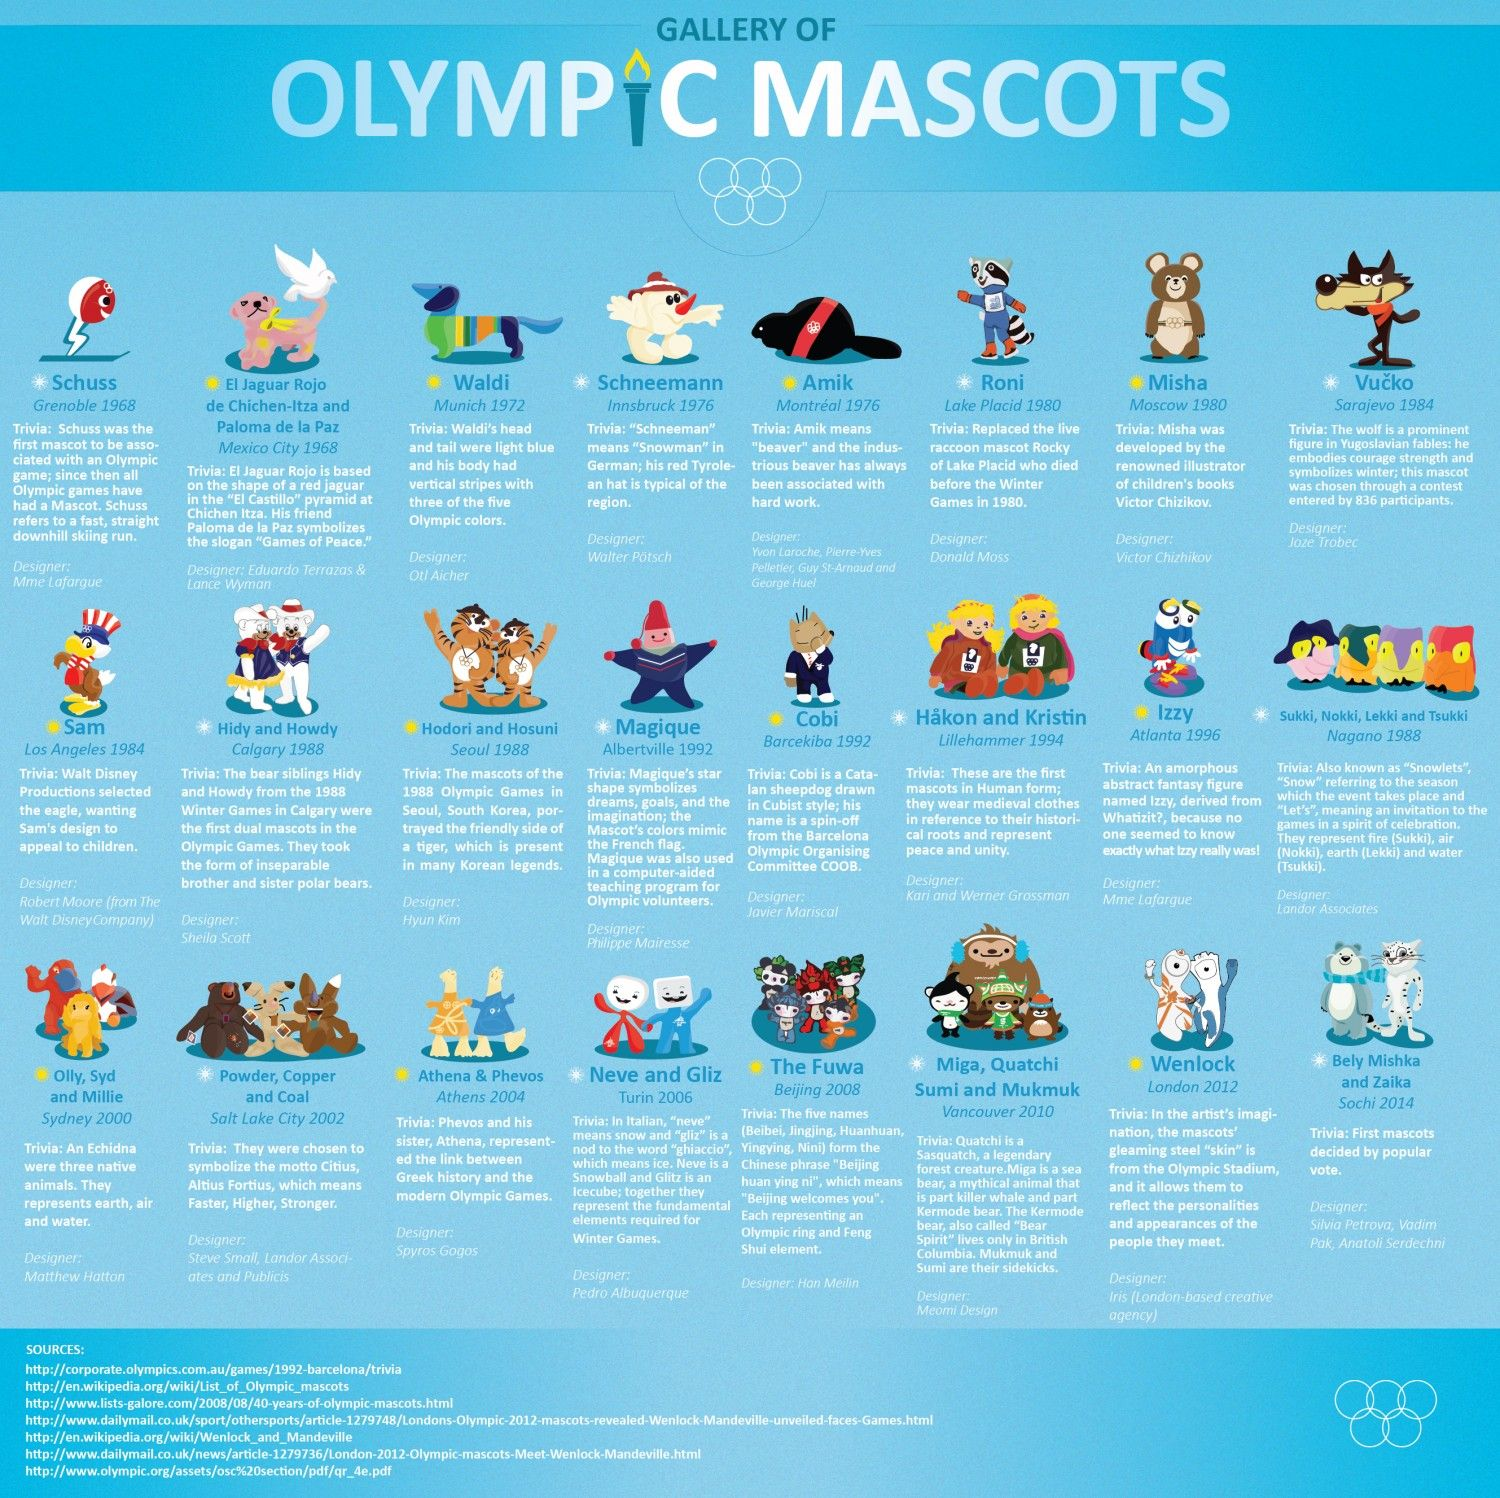 Olympic Mascots Grenoble 1968 Sochi Winter Olympics 2014